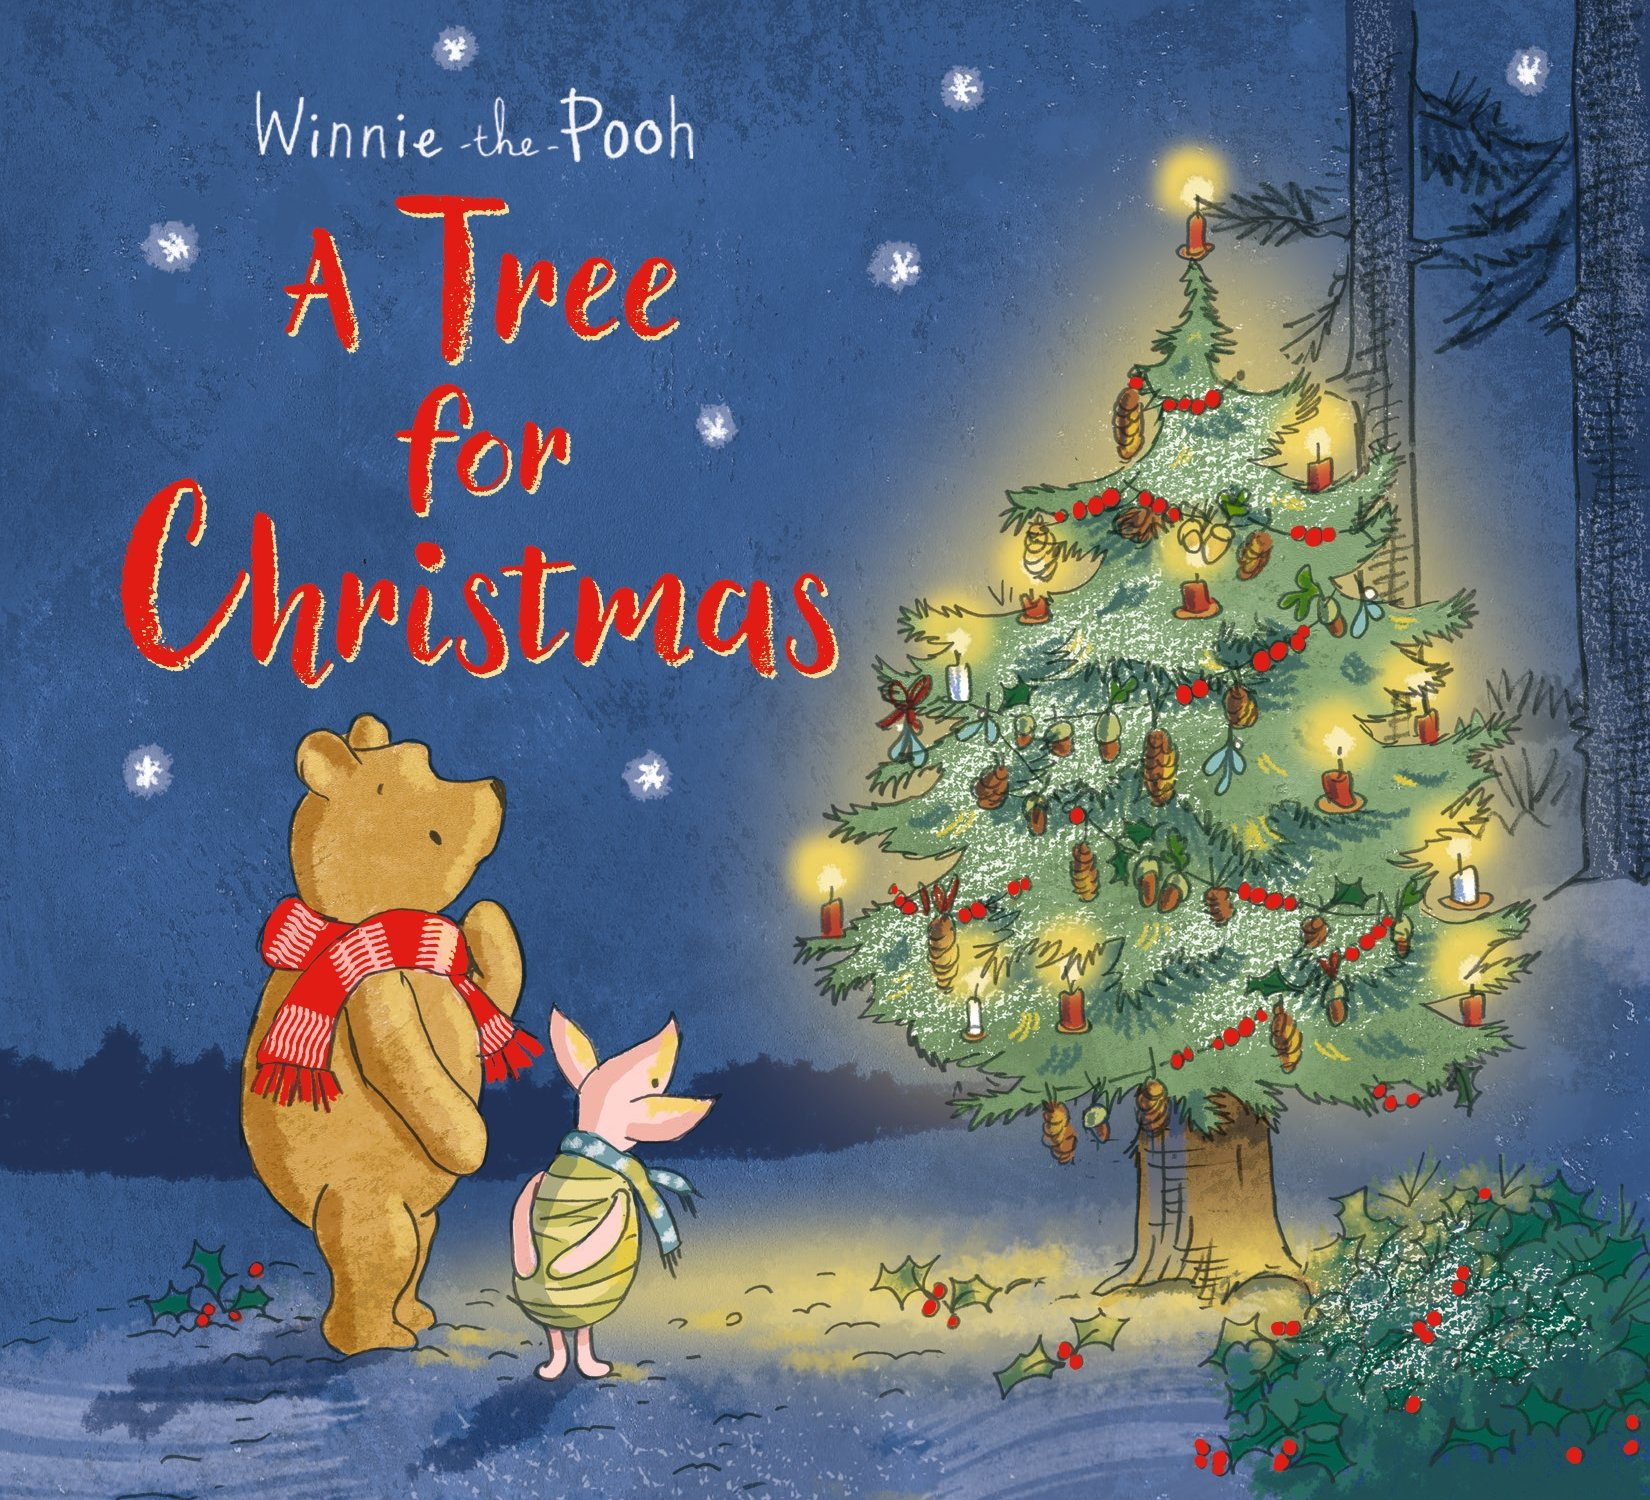 Winnie The Pooh Christmas.Winnie The Pooh A Tree For Christmas Amazon Co Uk Egmont